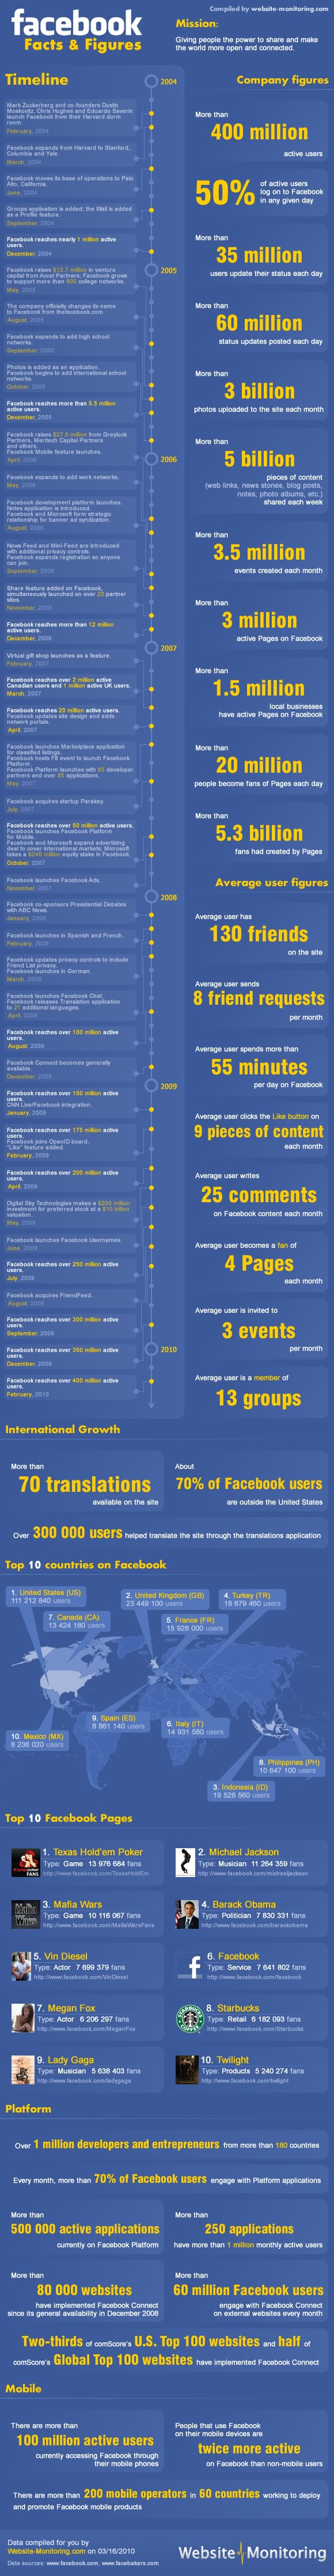 Facebook Facts & Figures Infographic